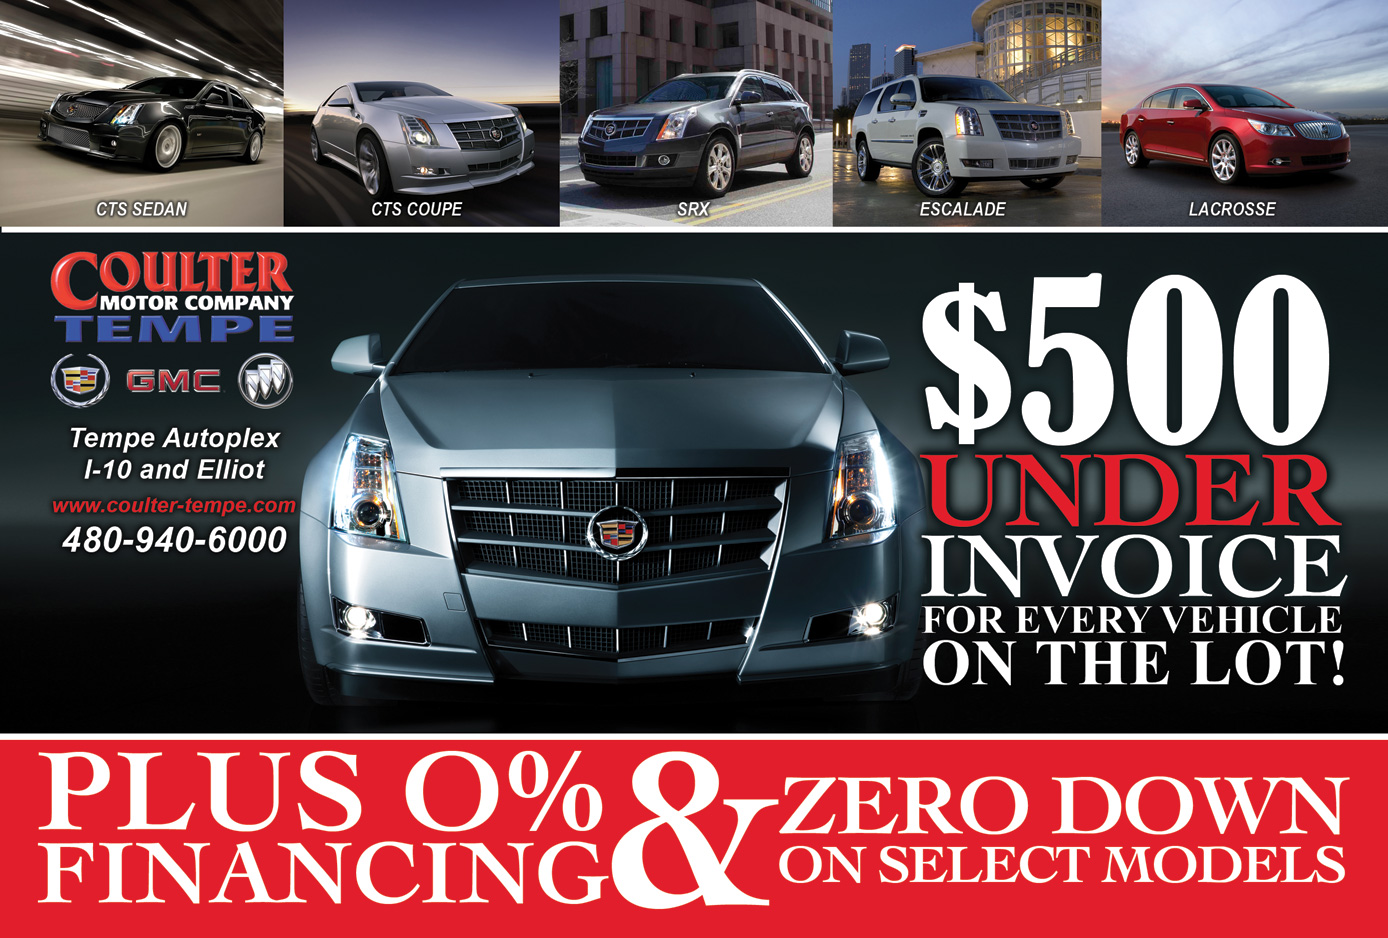 Every car on the lot 500 under invoice act now for Coulter motor company tempe